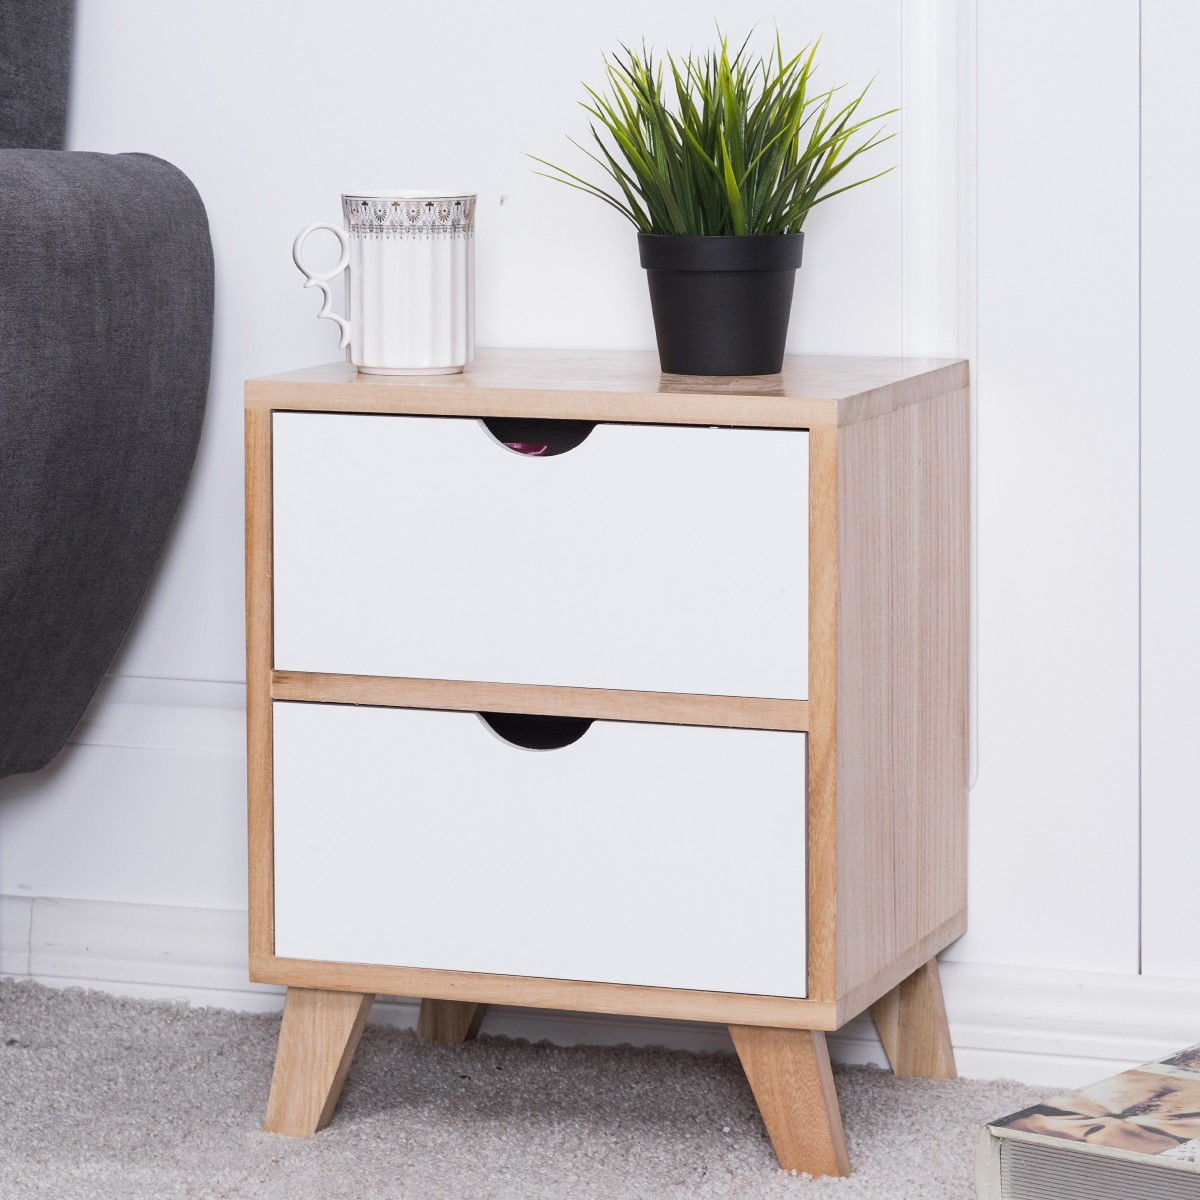 2 Drawers End Storage Wood Cabinet Bedroom Nightstand – By Choice ...